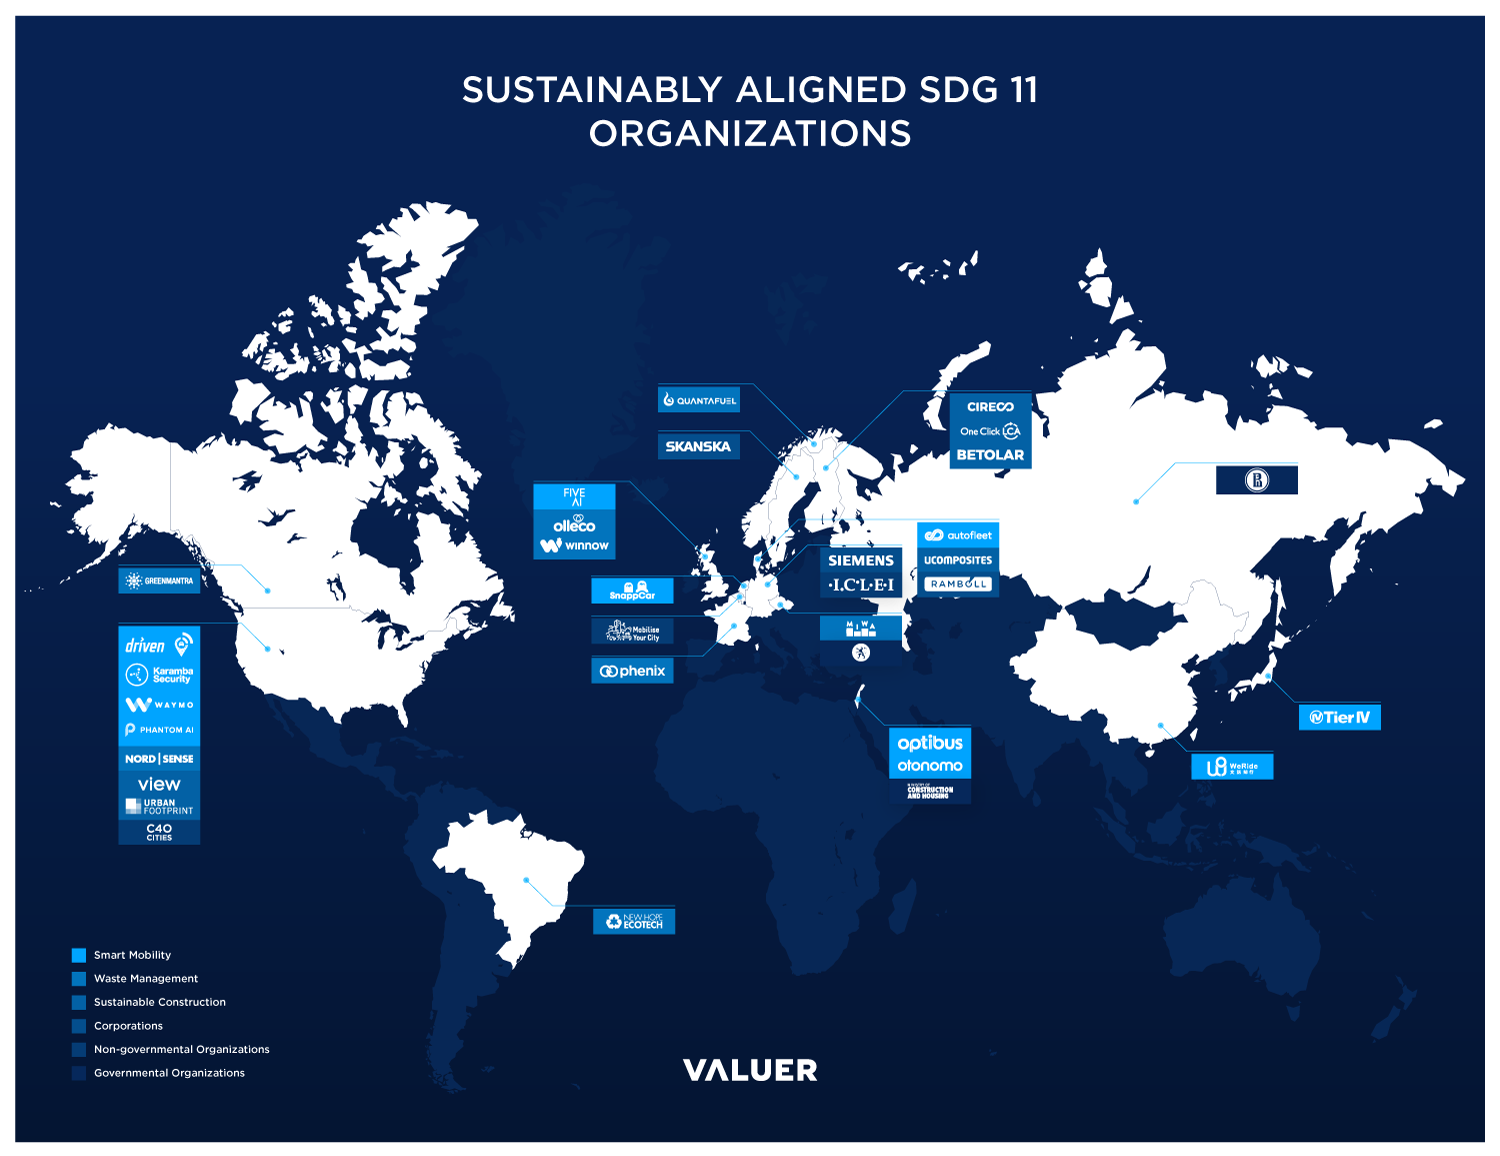 map of new businesses and large corproates working with sdg 11